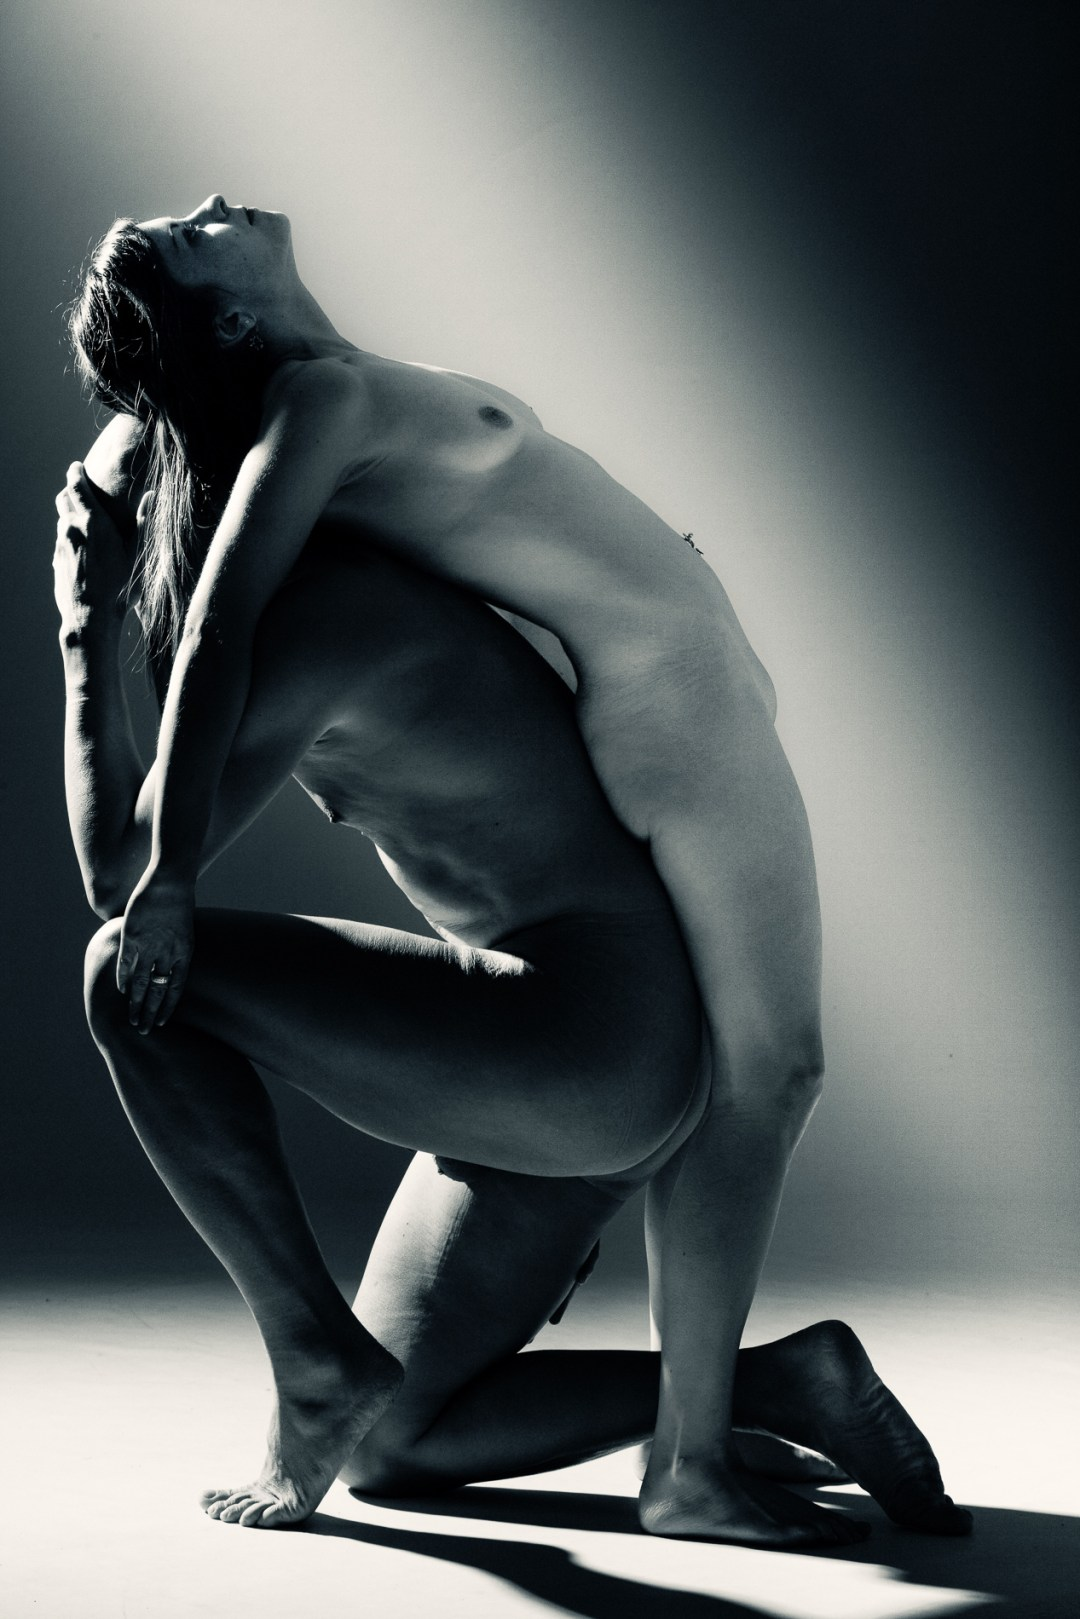 Bodyscapes-8855-Edit